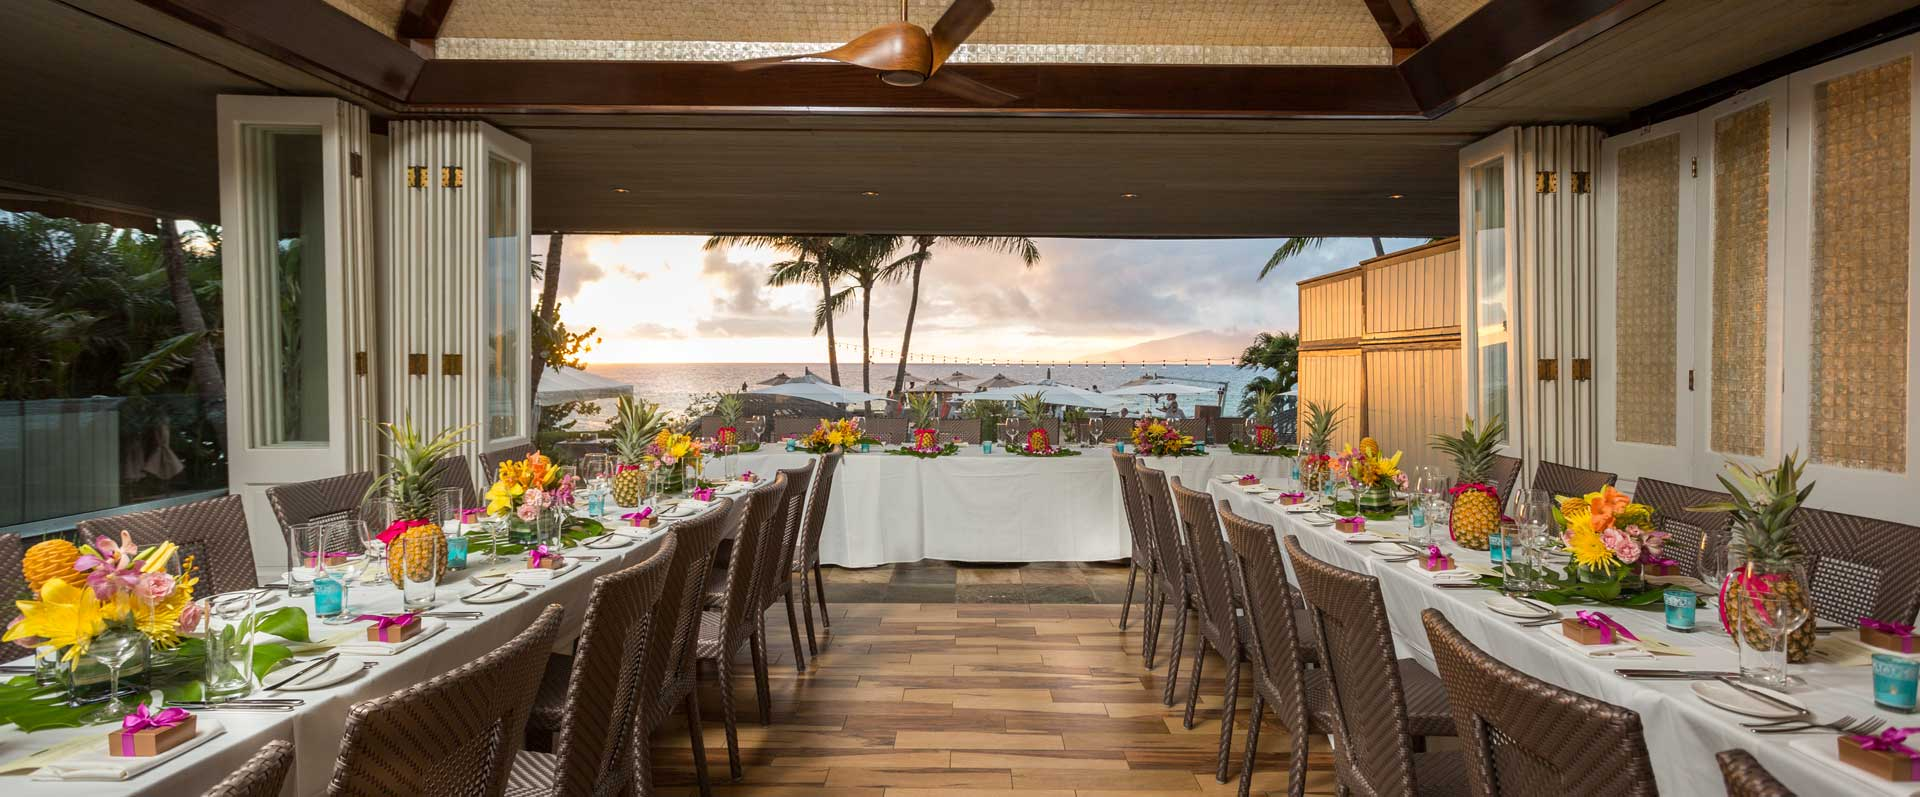 Partial Buyout EXCLUSIVE USE OF FULL OCEANFRONT DECK & A PORTION OF THE OPEN AIR FINE DINING ROOM FOR LARGE PARTIES